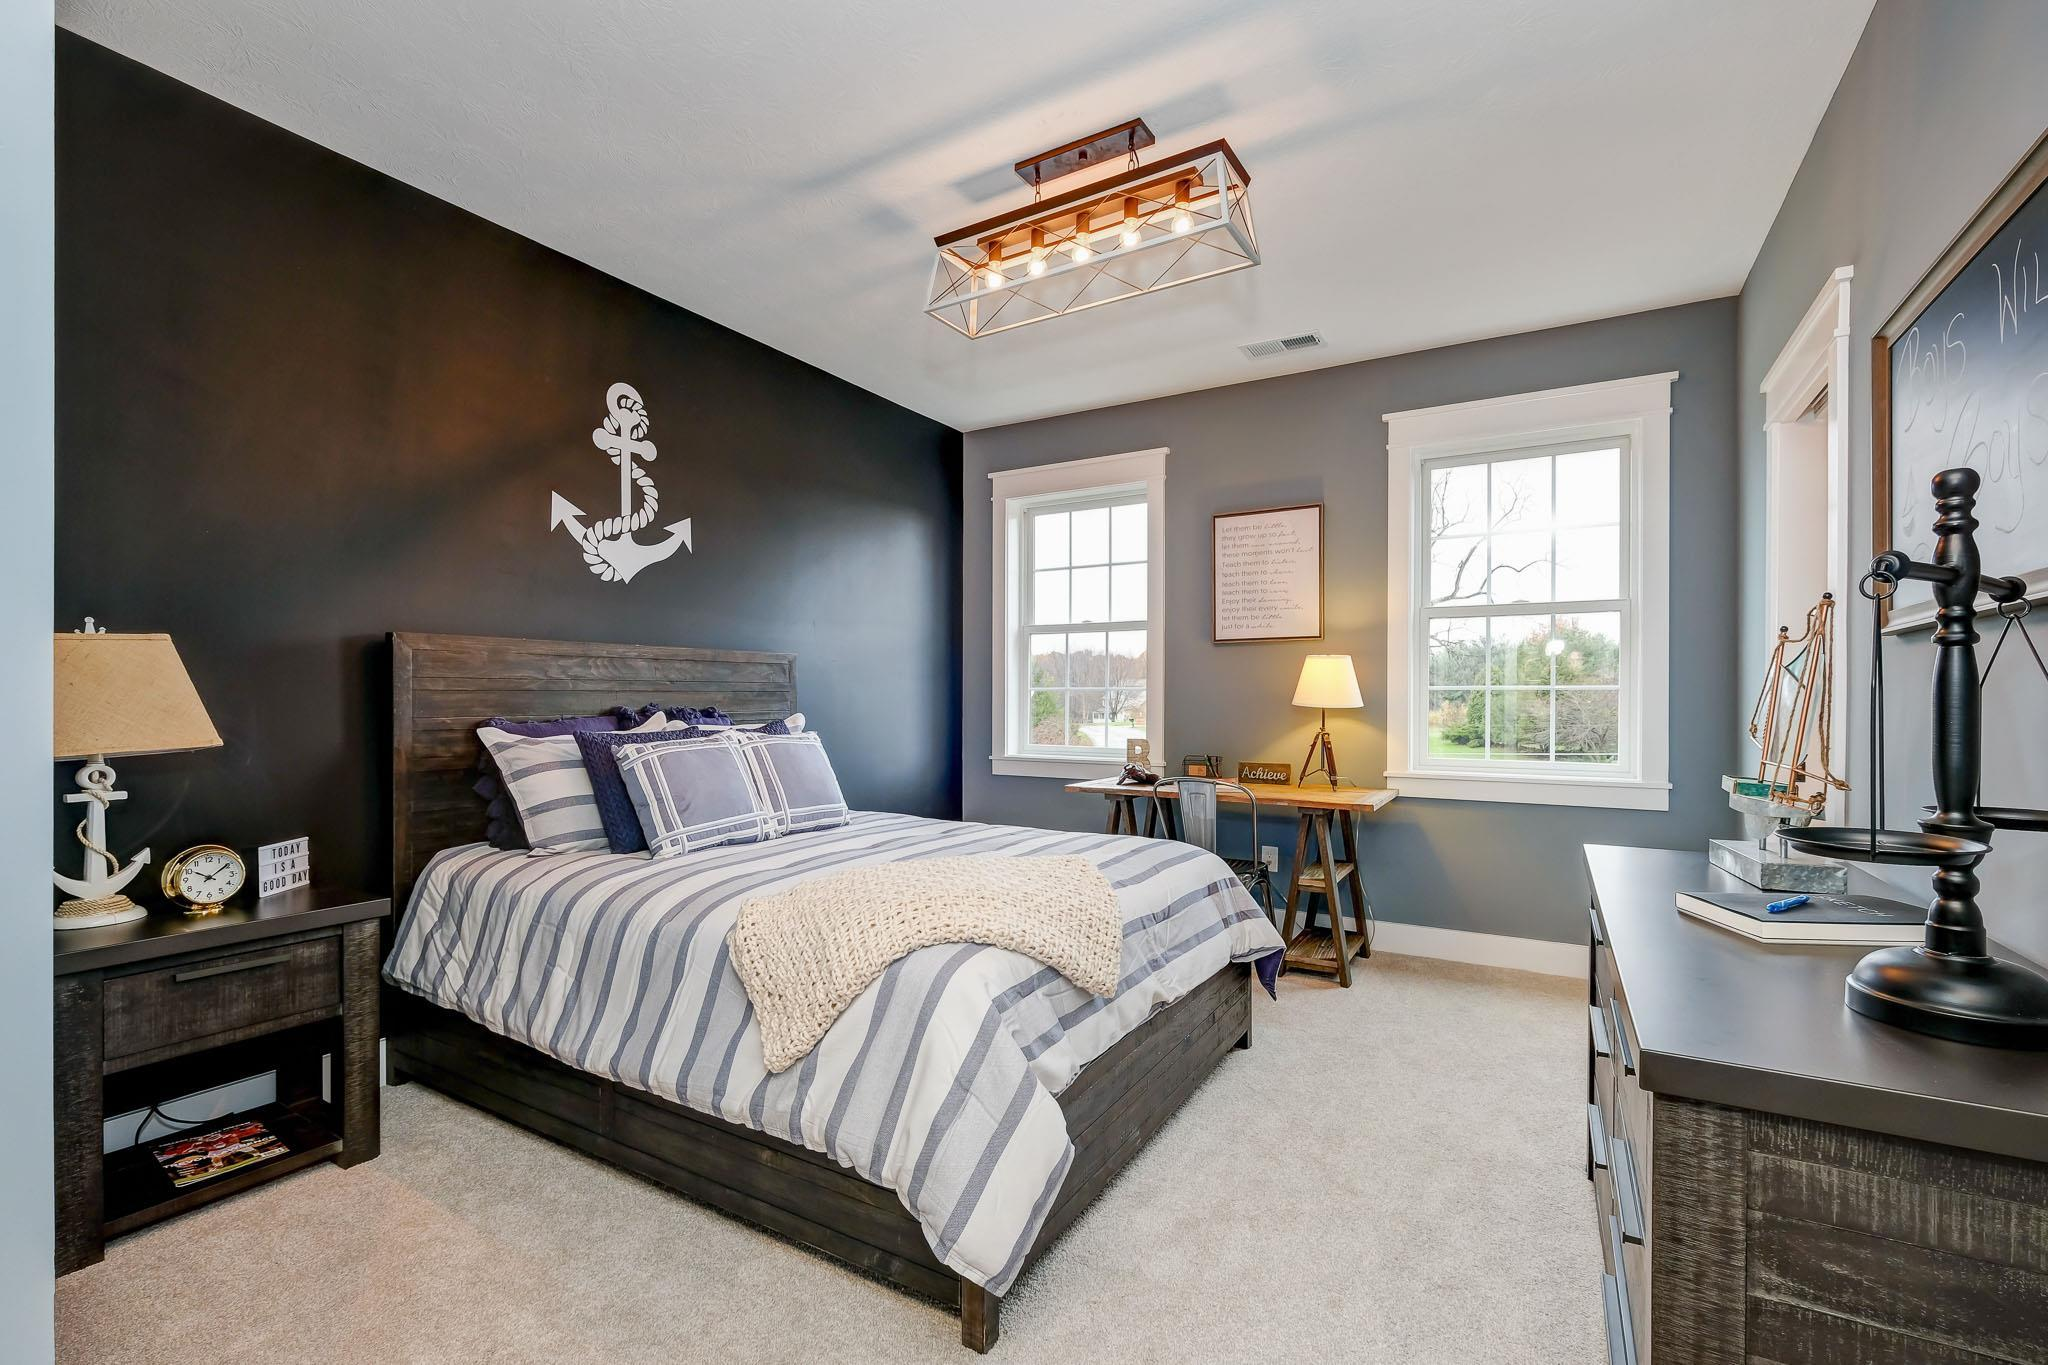 Bedroom featured in the Portland By Infinity Custom Homes in Pittsburgh, PA